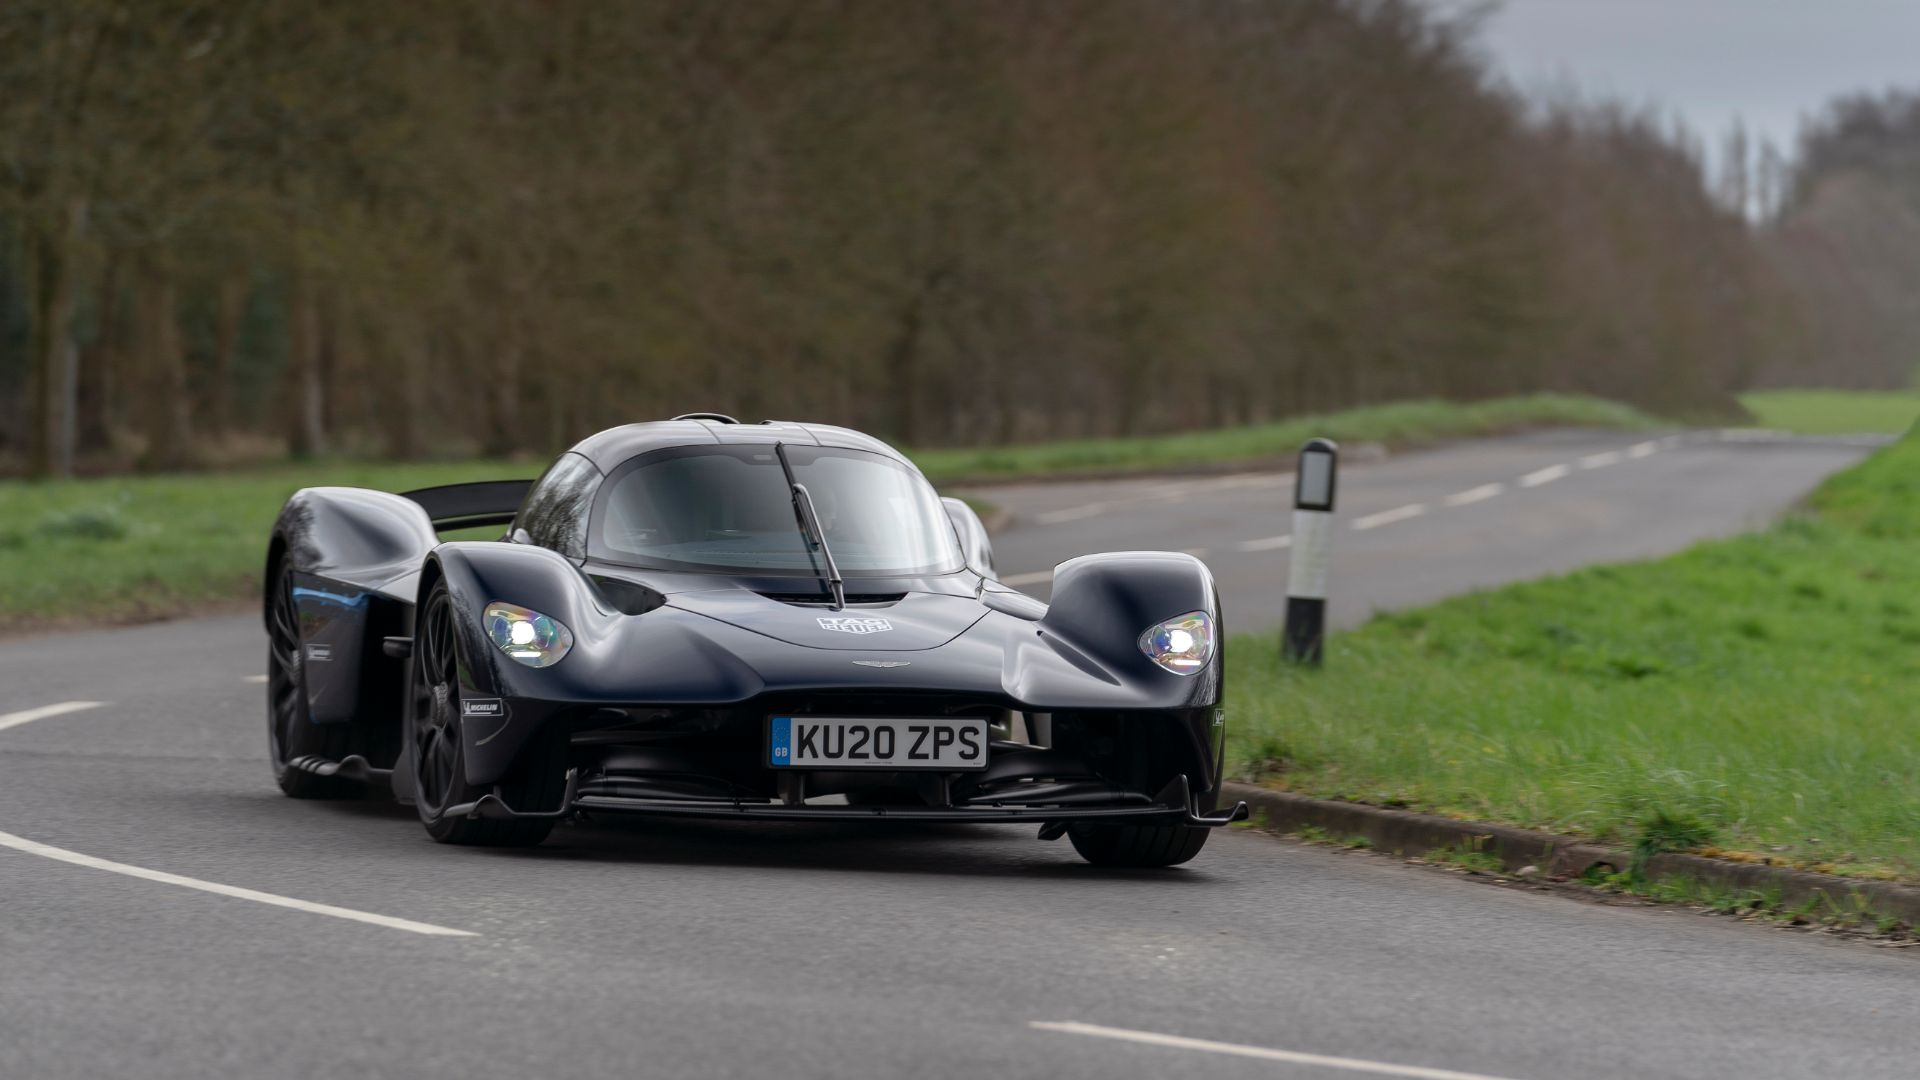 Aston Martin Valkyrie testing on the road